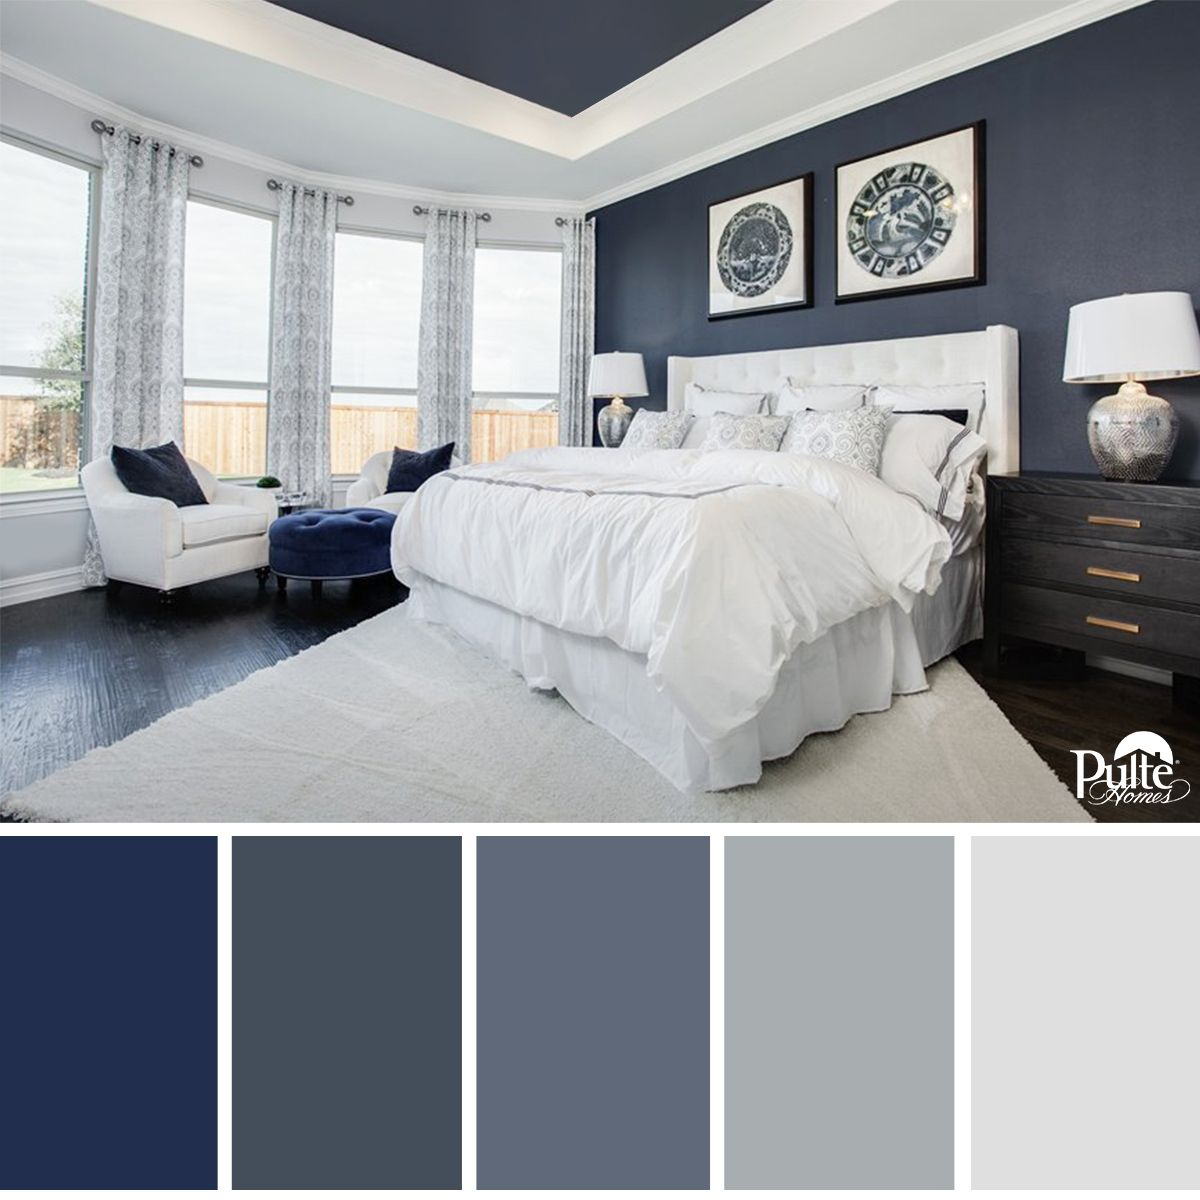 Master bedroom wall paint designs - This Bedroom Design Has The Right Idea The Rich Blue Color Palette And Decor Create Florida Master Bedroomblue Accent Bedroombedroom Wall Painting Ideas